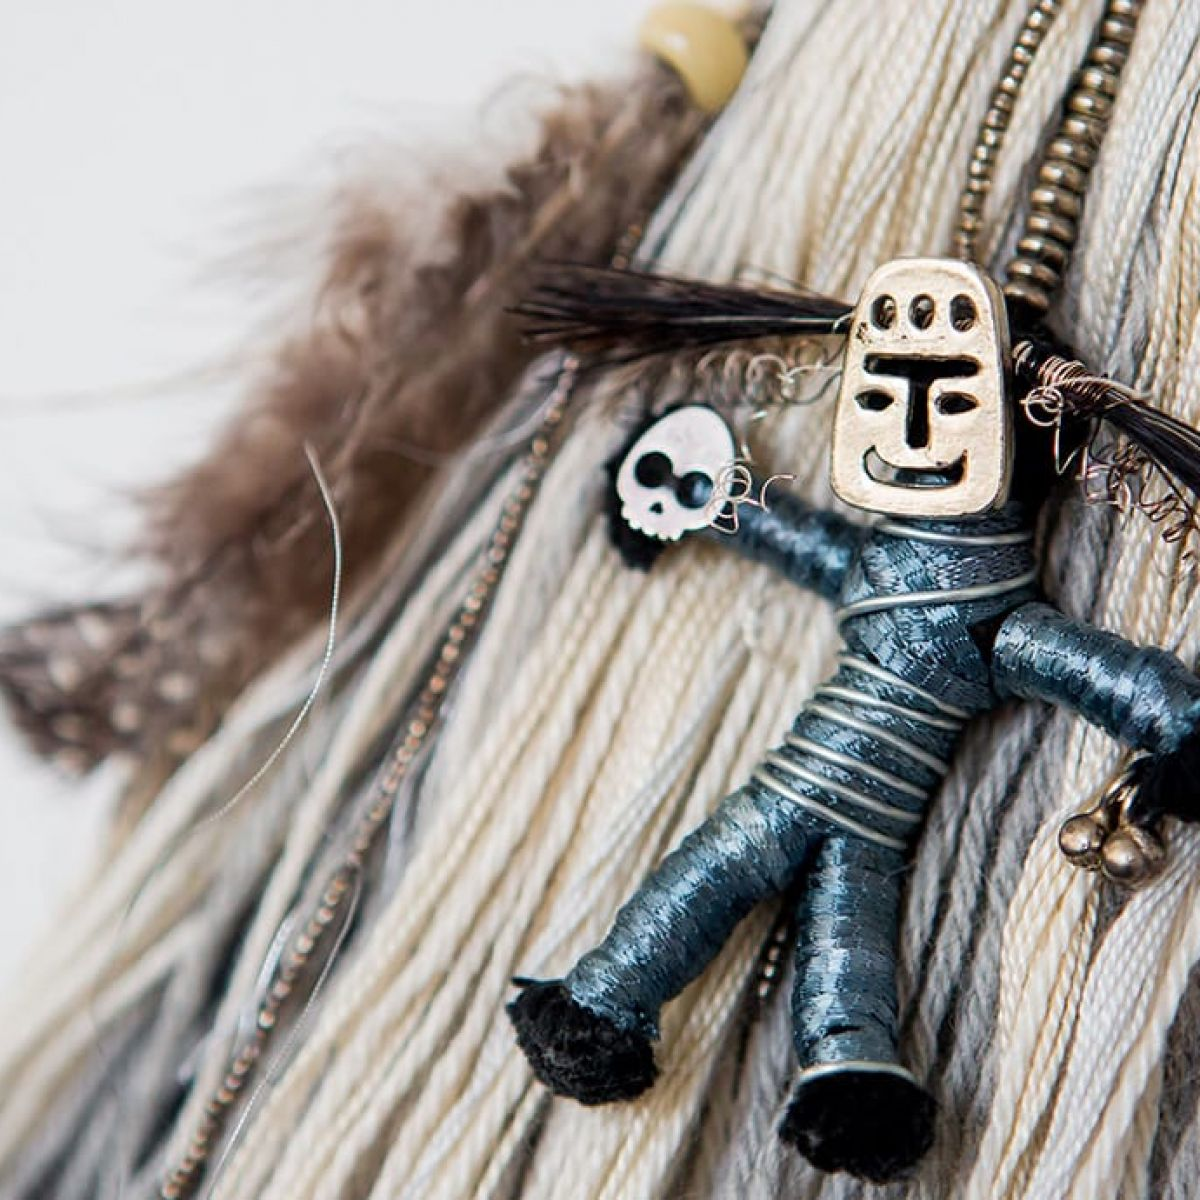 About Tassel Making